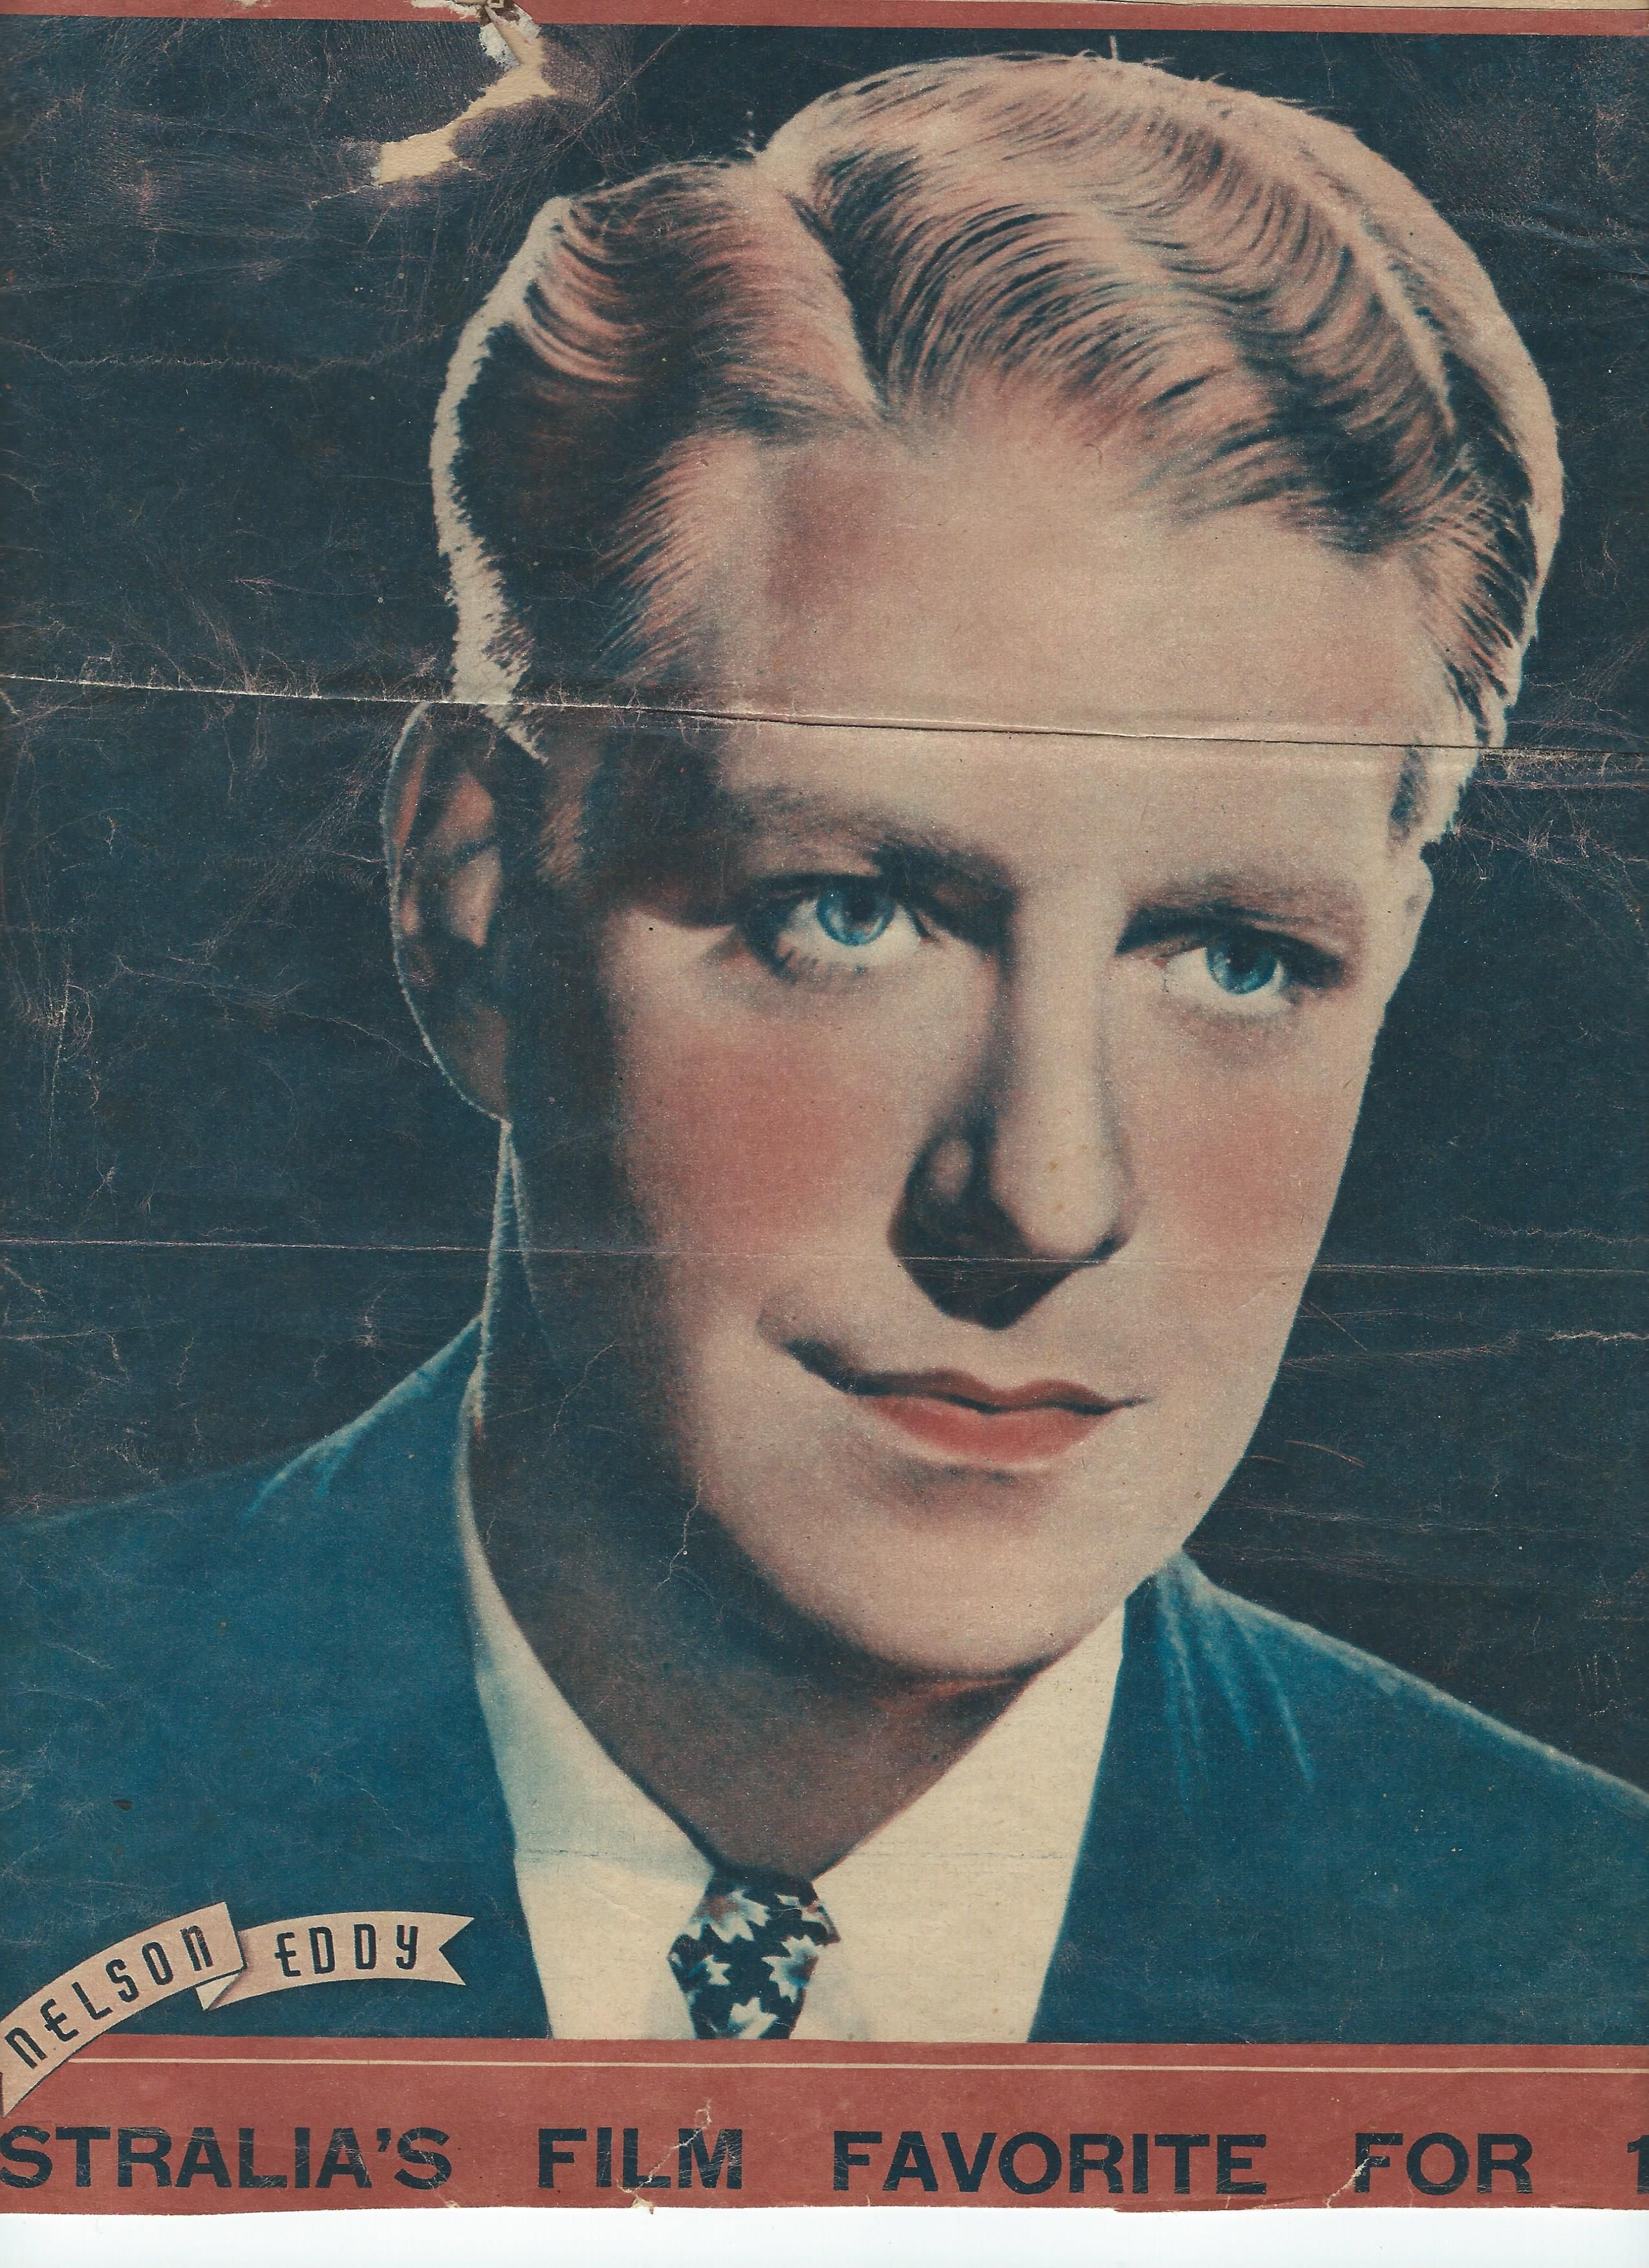 From australia a magazine color portrait of nelson eddy publication dated december 19 1938 caption below says australias film favorite for 1938